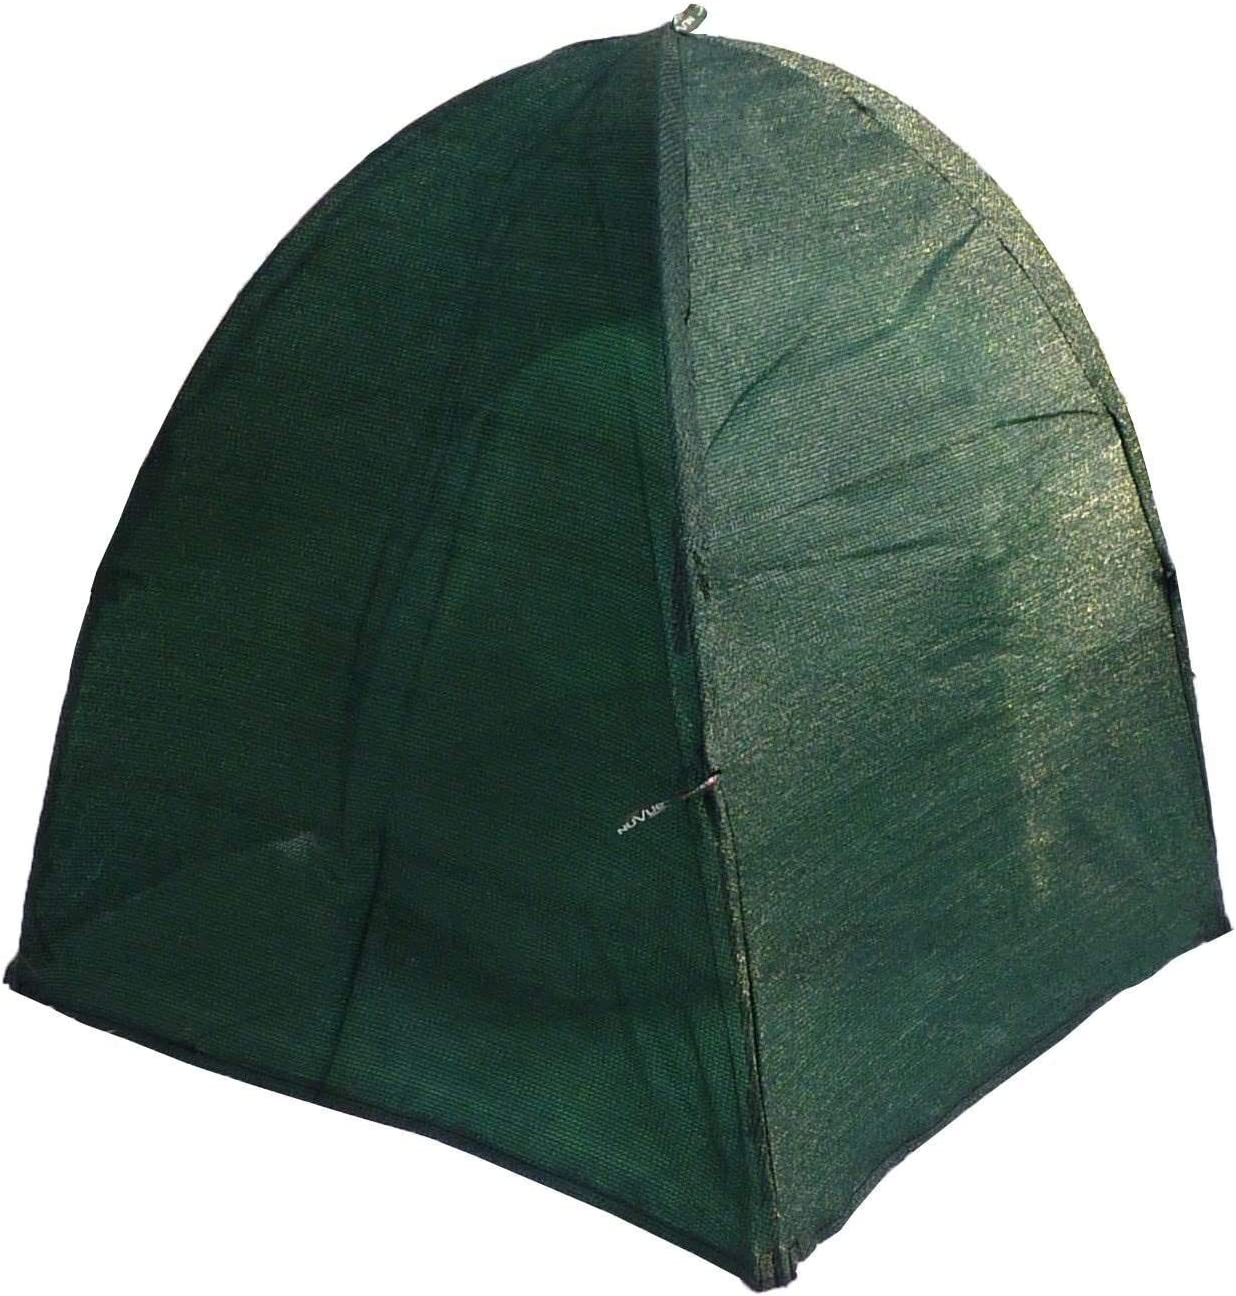 Nuvue Products 20250 Winter Shrub Cover Multiple Sizes Available Hunter Green